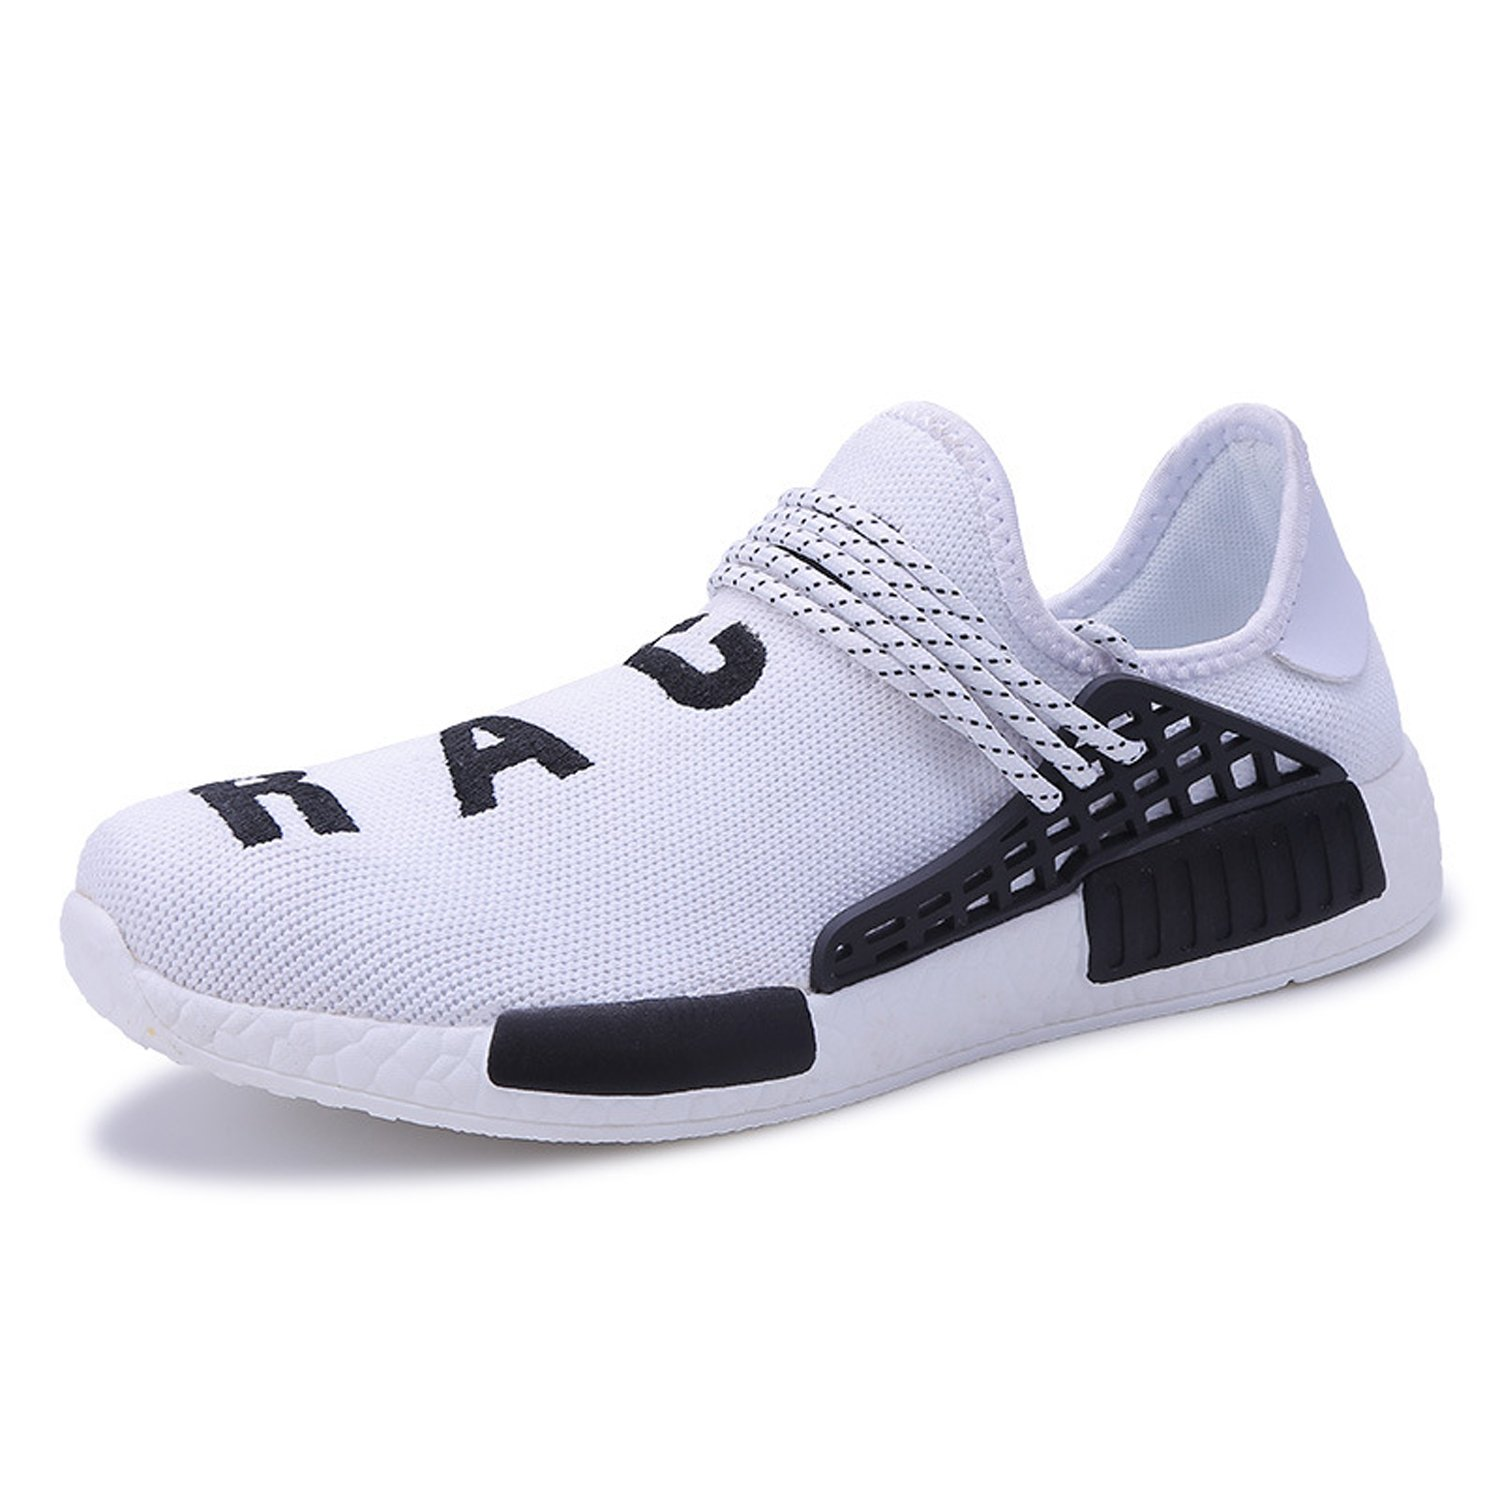 AI Aleng Mens Womens Unisex Lightweight Fashion Sneakers Breathable Lace-up Athletic Sports Shoes Human Race Casual Running Shoes B074RGLZGL Women 11 D(M) US /Men 10 D(M) US|White